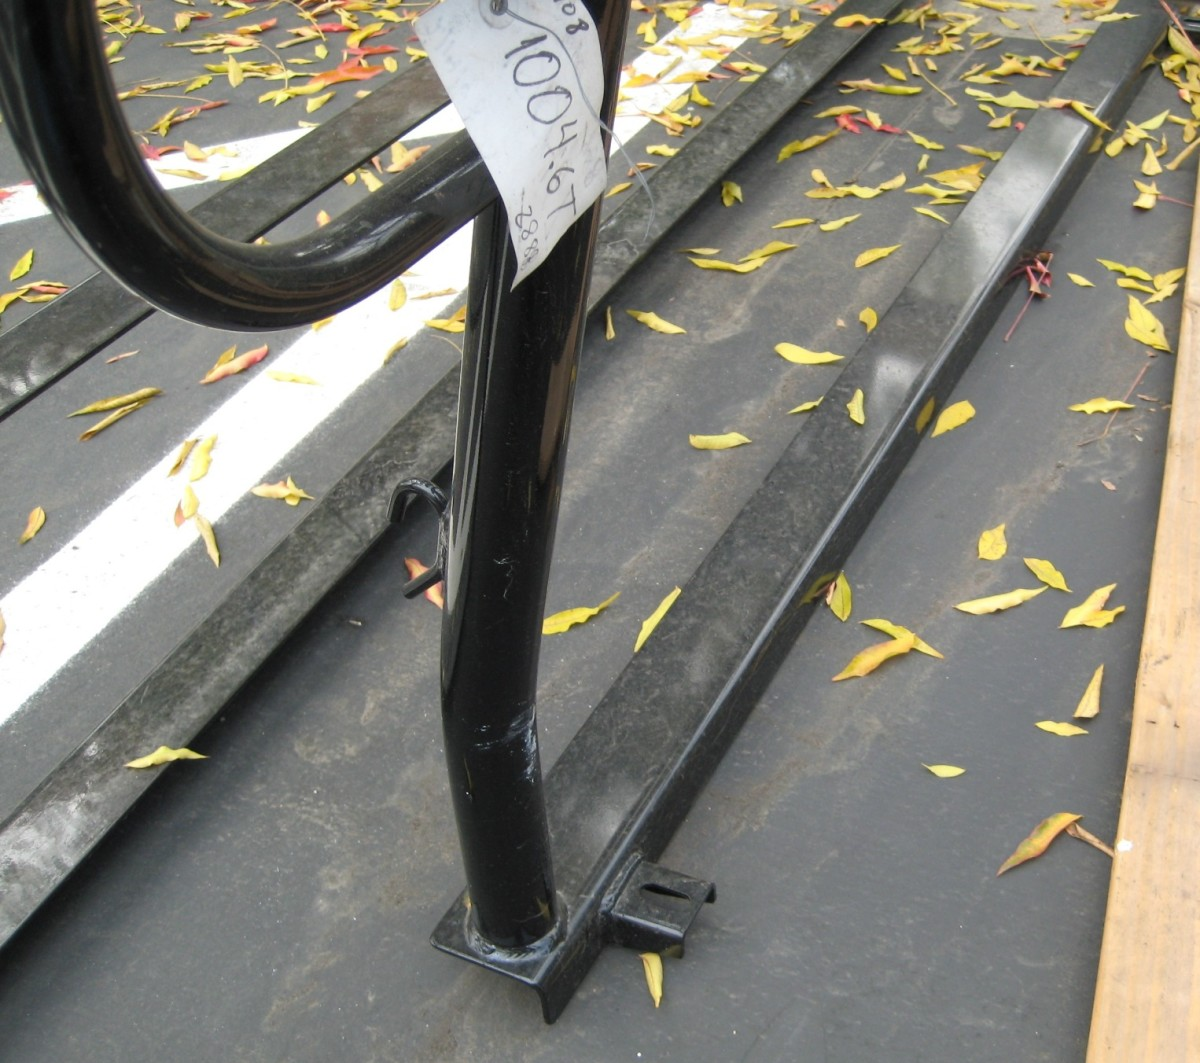 This is the rear of the rack, notice the extruded part where most of these racks are normally just straight angle iron.